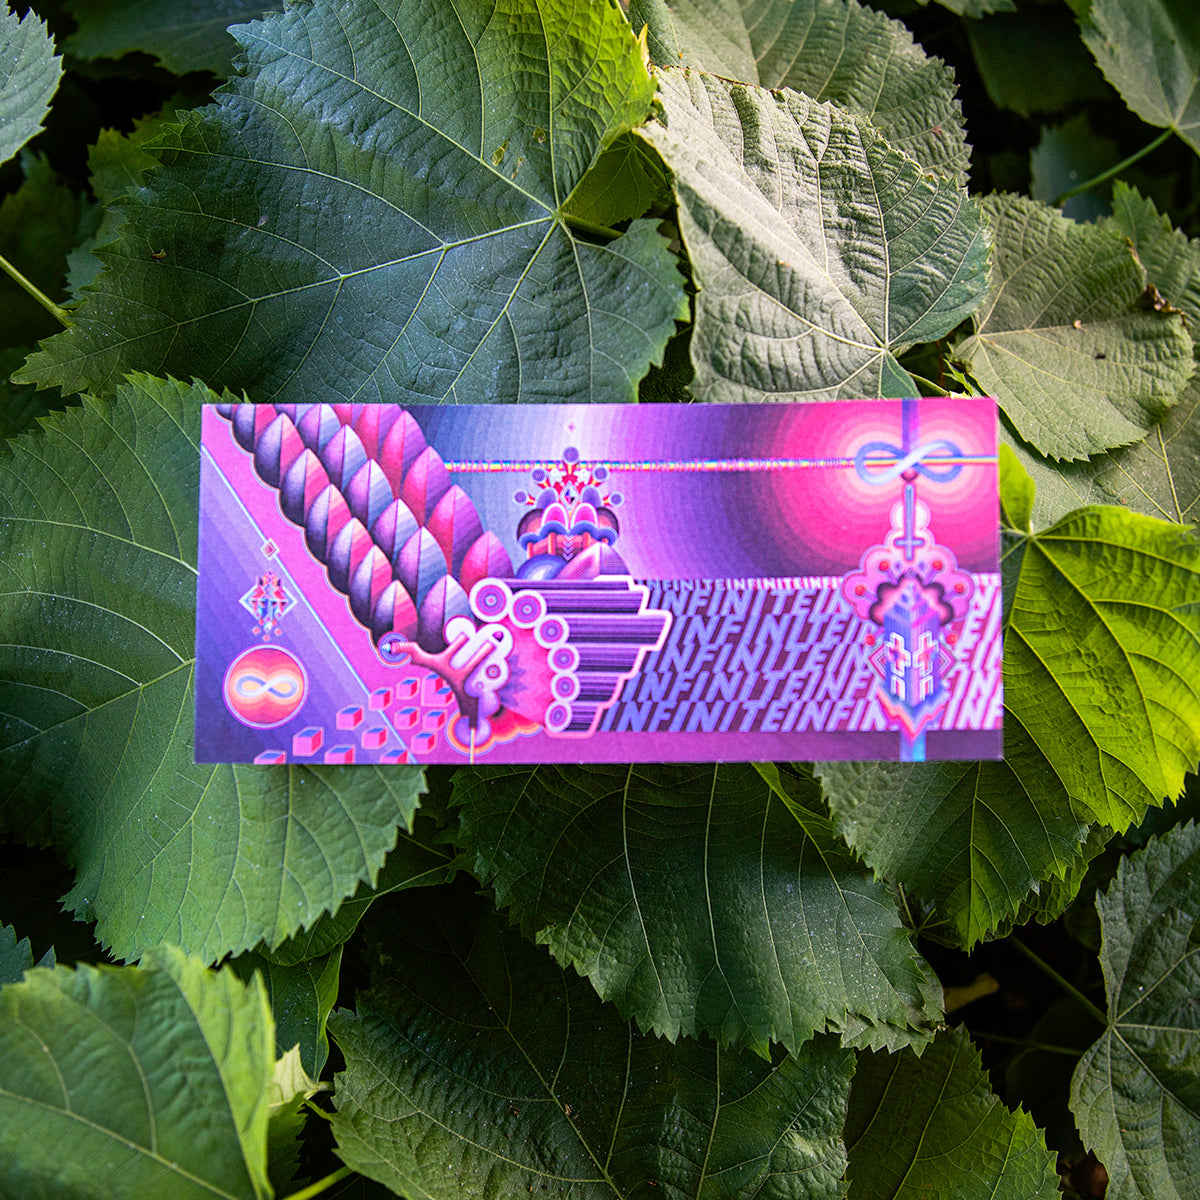 Exchanghibition Banknotes